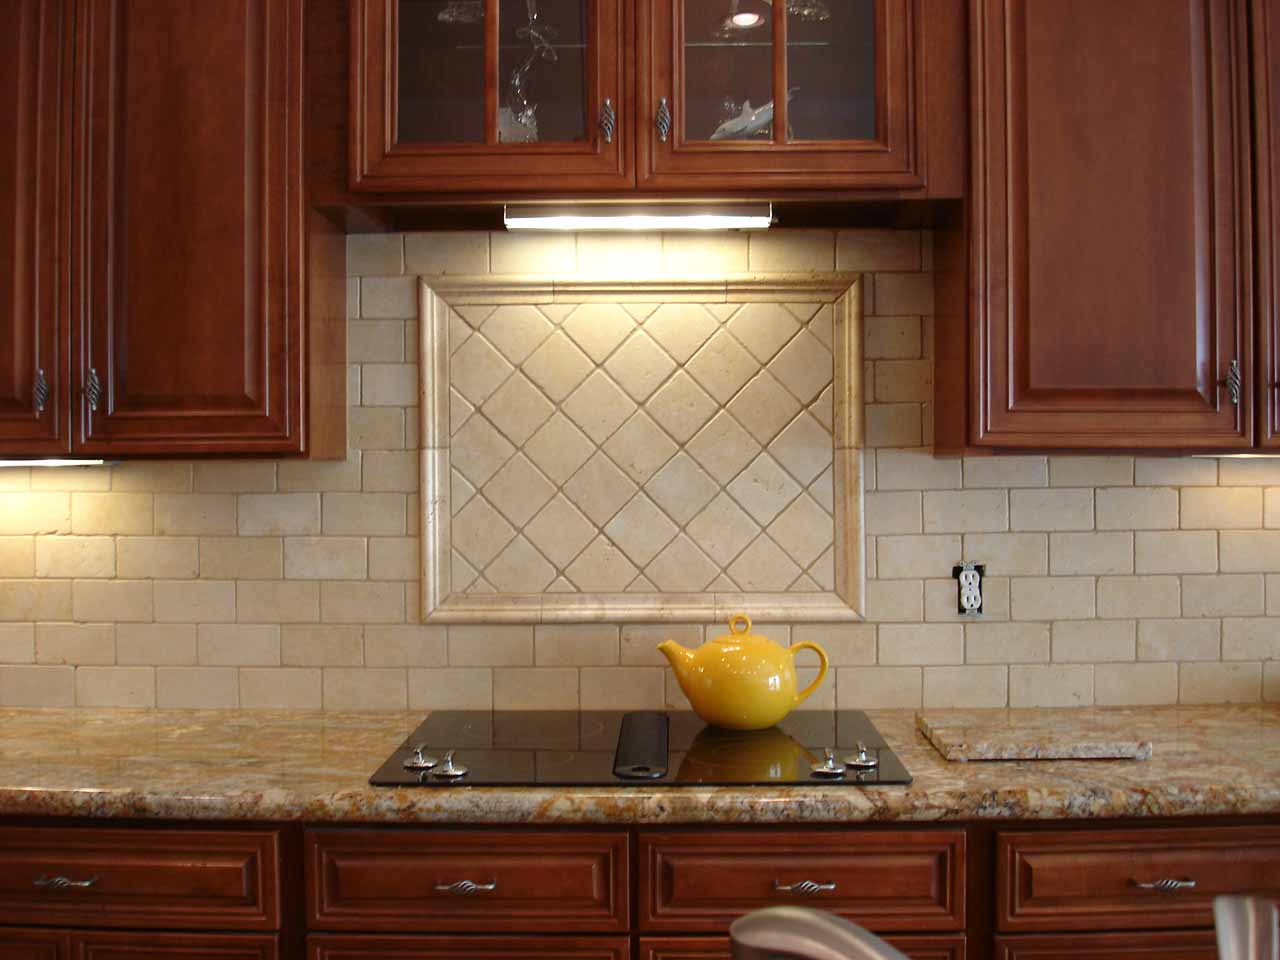 75 kitchen backsplash ideas for 2018 tile glass metal etc beige kitchen backsplash dailygadgetfo Image collections